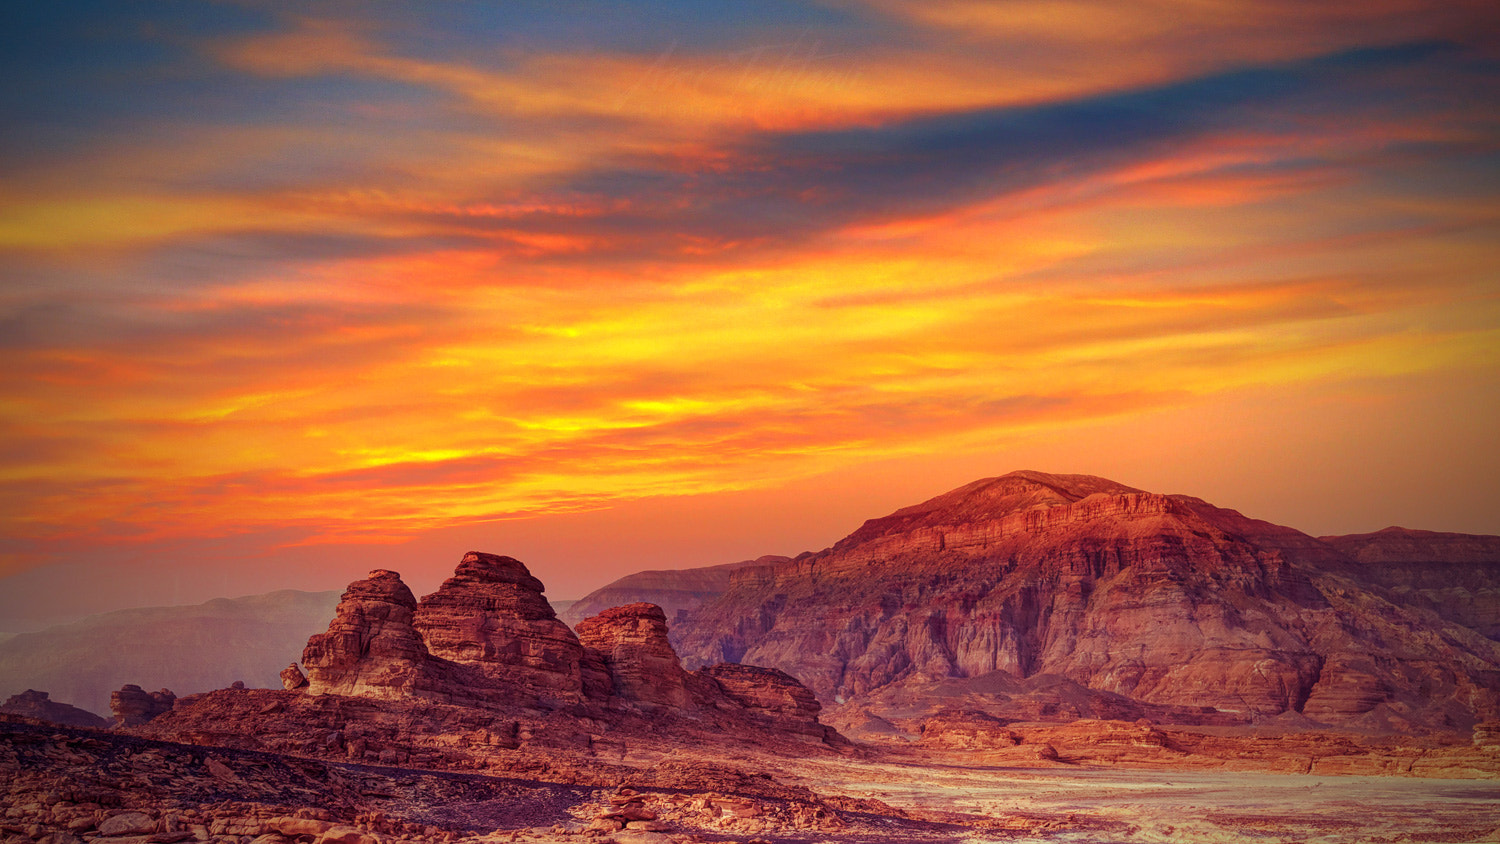 Photograph Fire by Amr Tahtawi on 500px